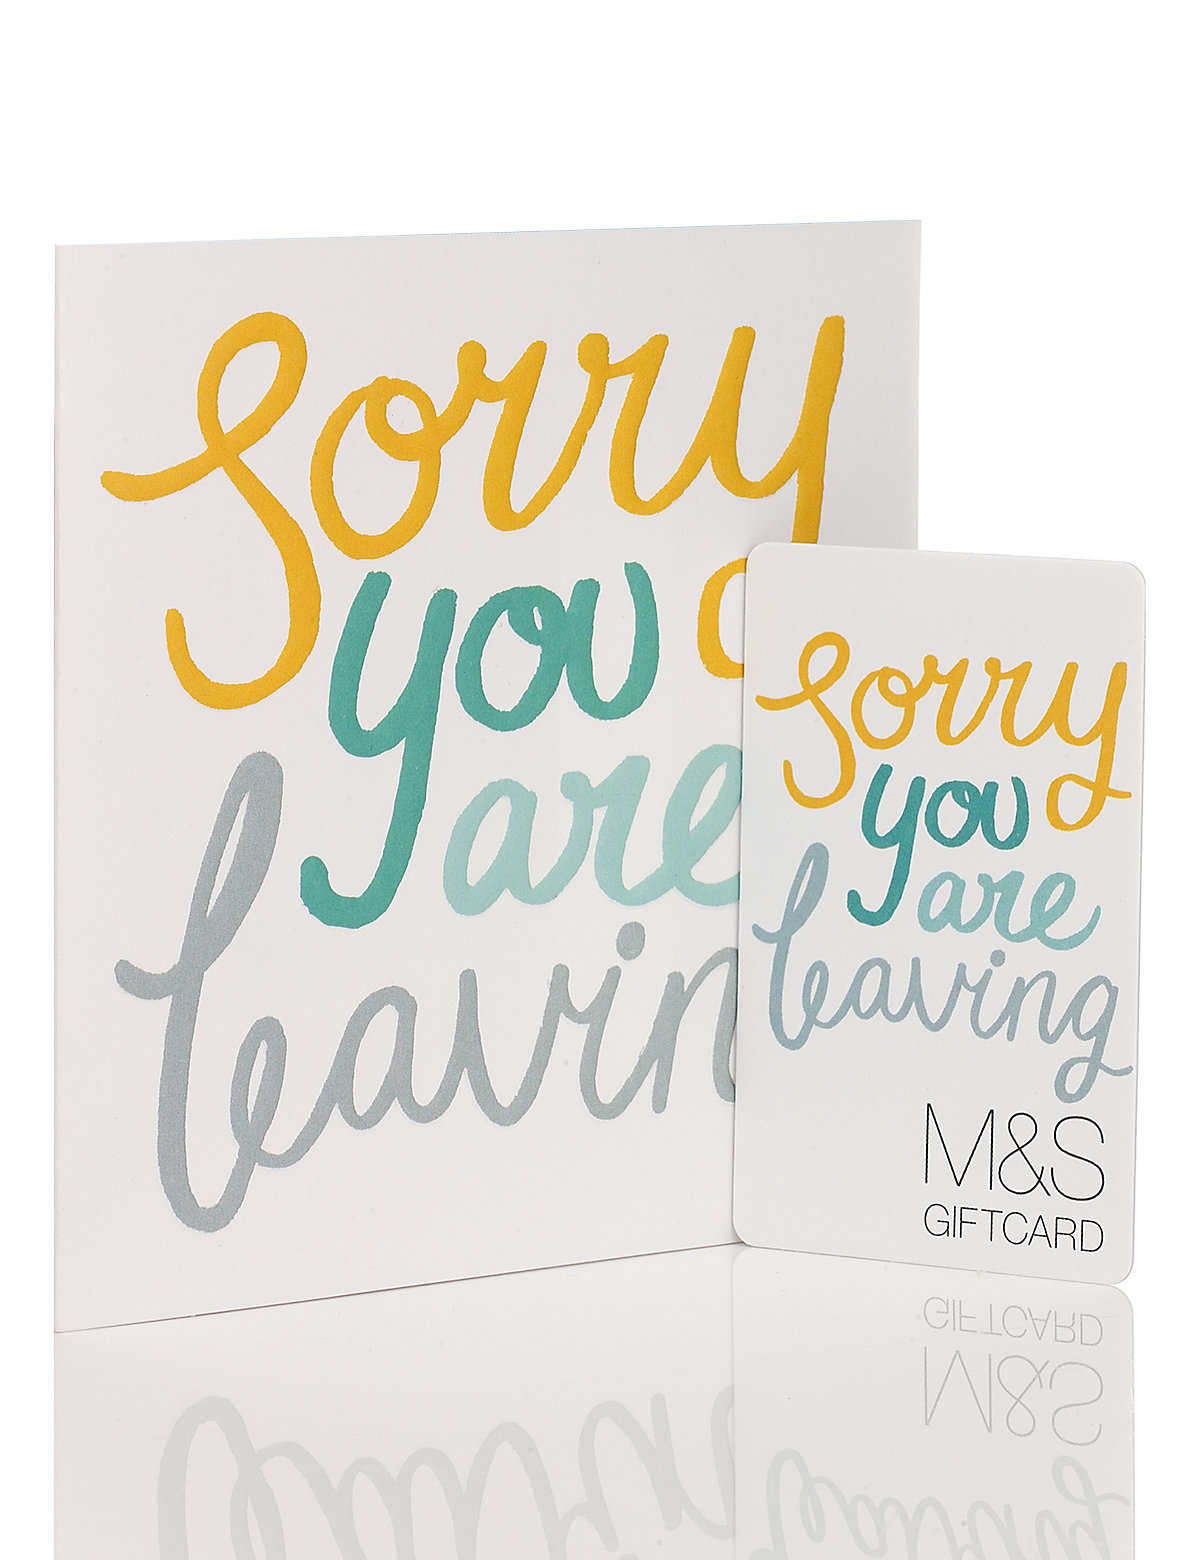 Sorry Youre Leaving Gift Card £1500